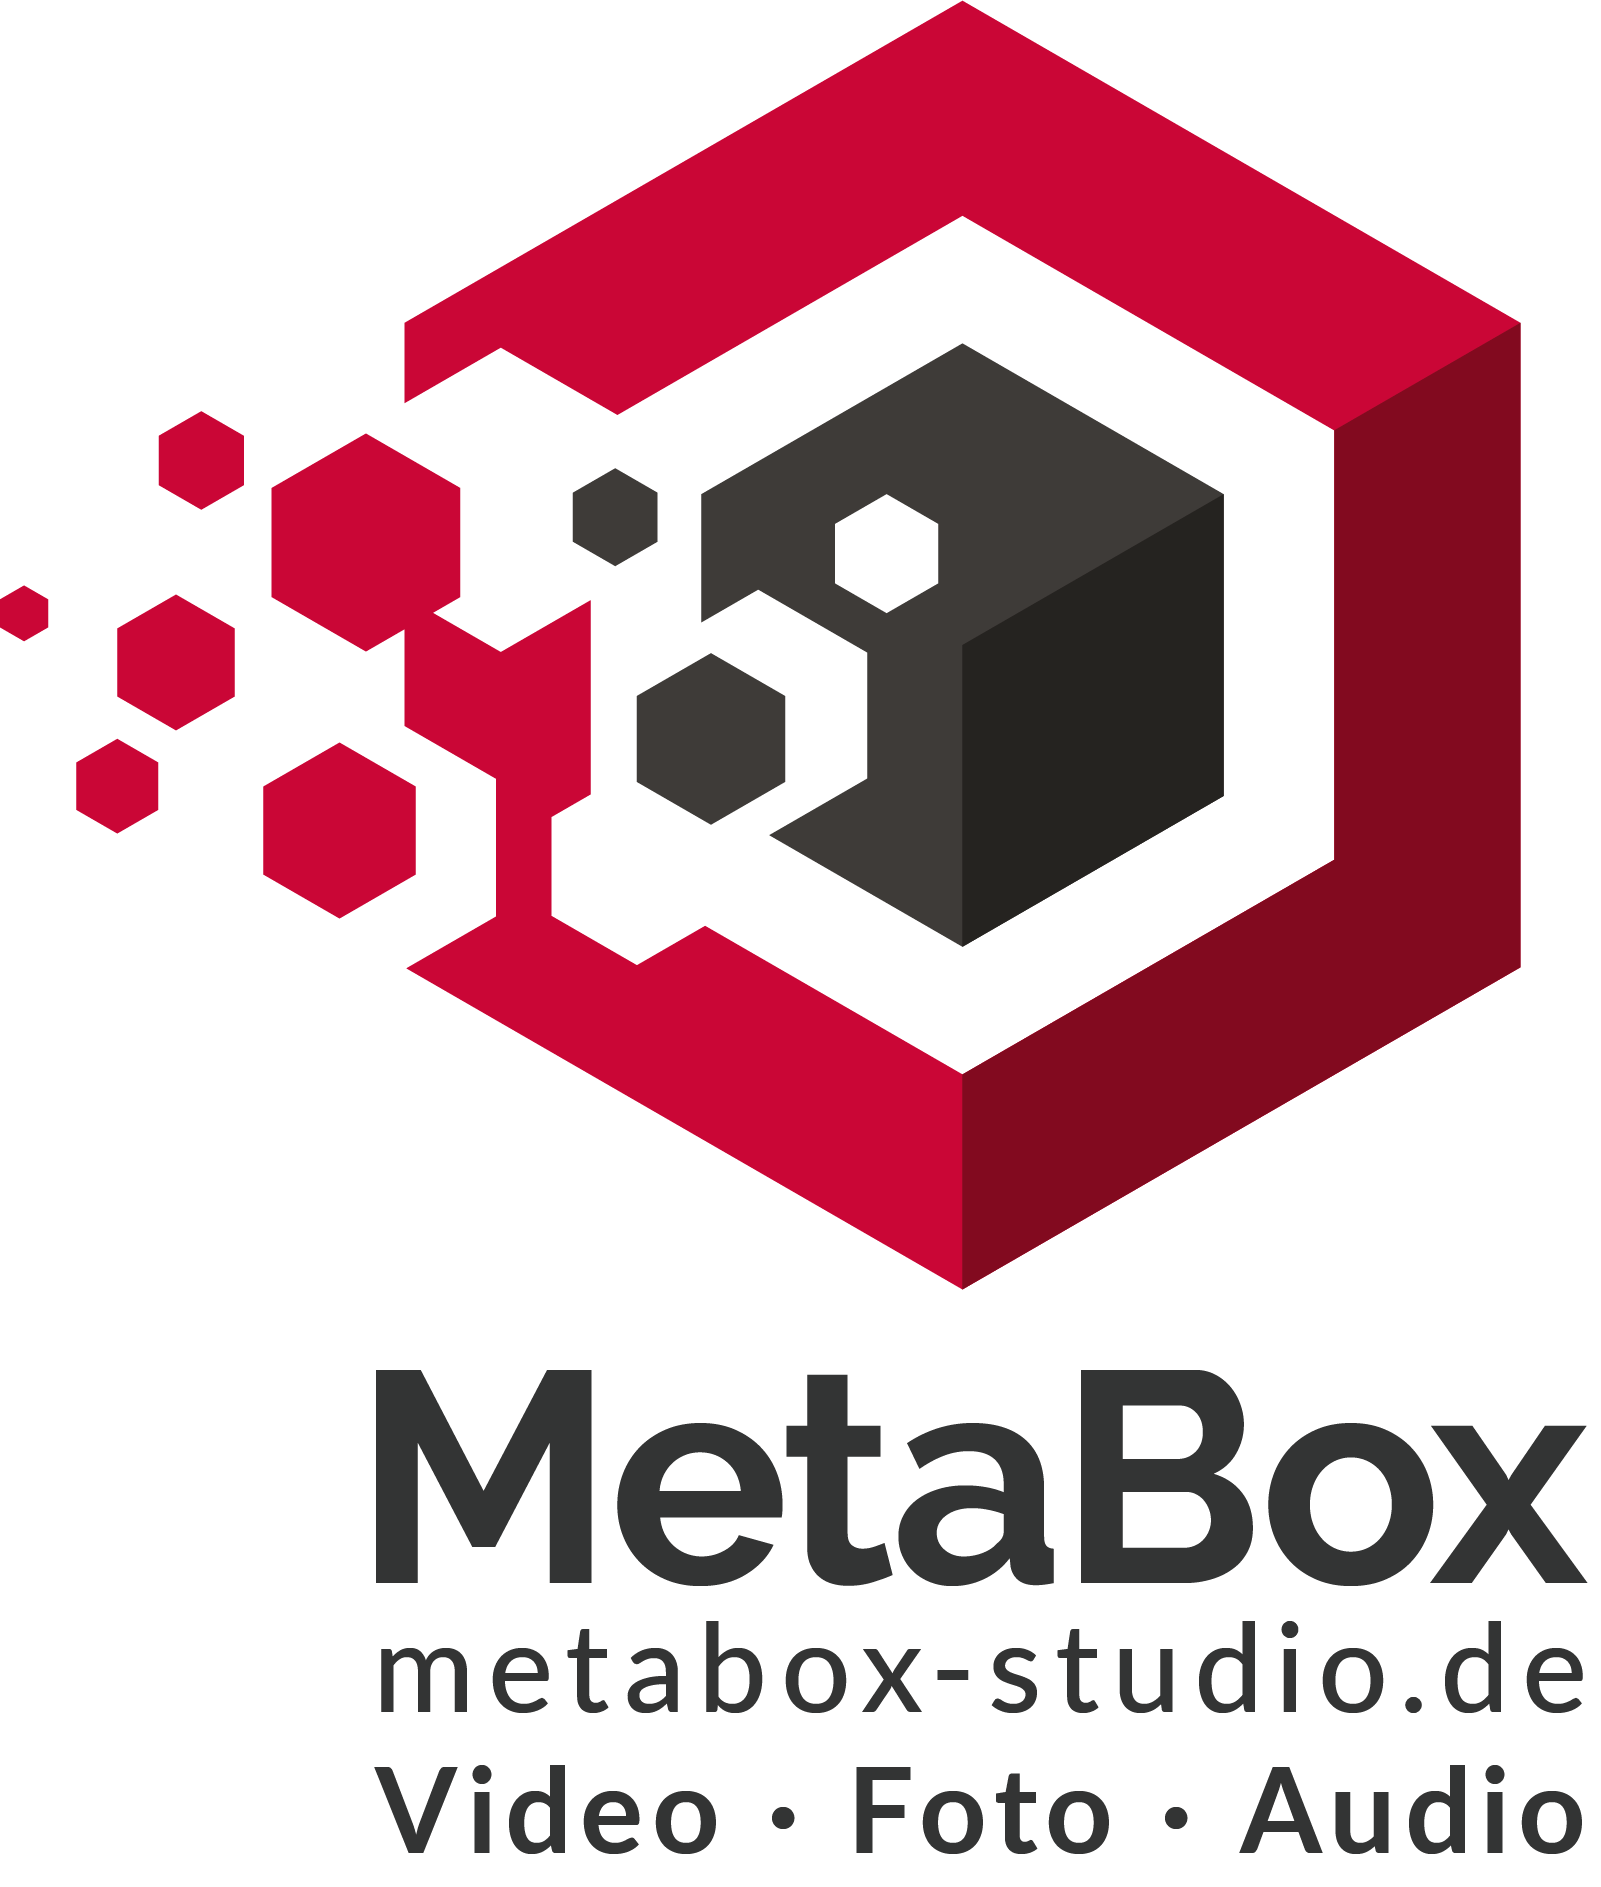 Logo mit Claim metabox-studio.de